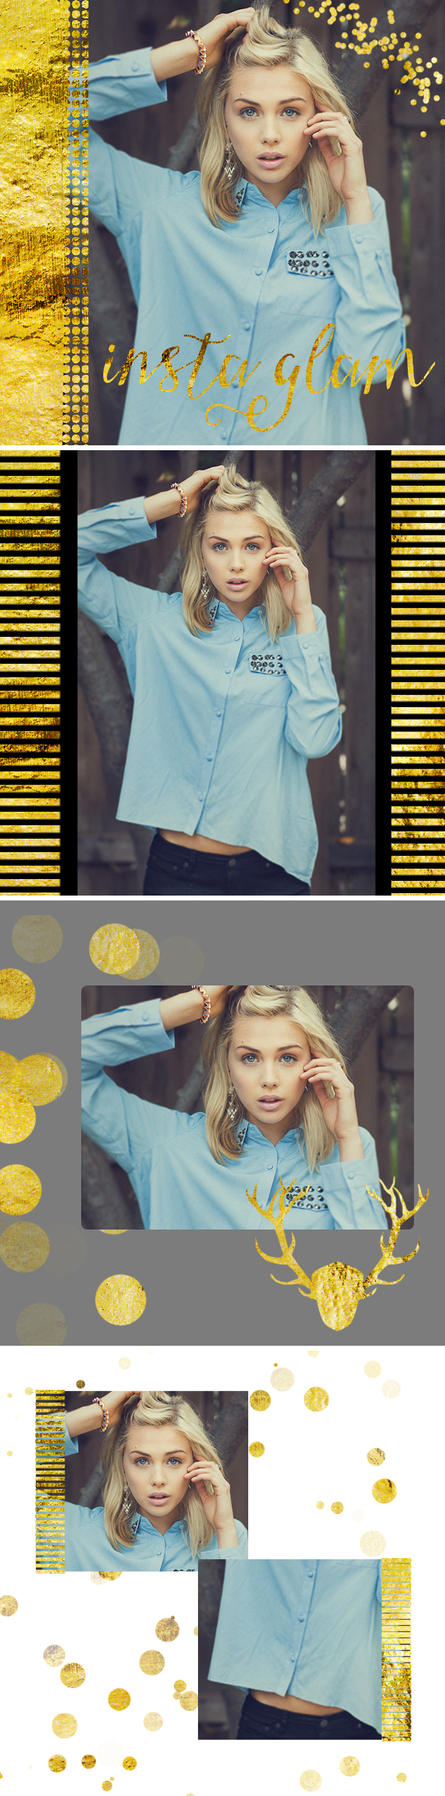 4 Insta Glam Instagram PSD Templates by toxiclolley88